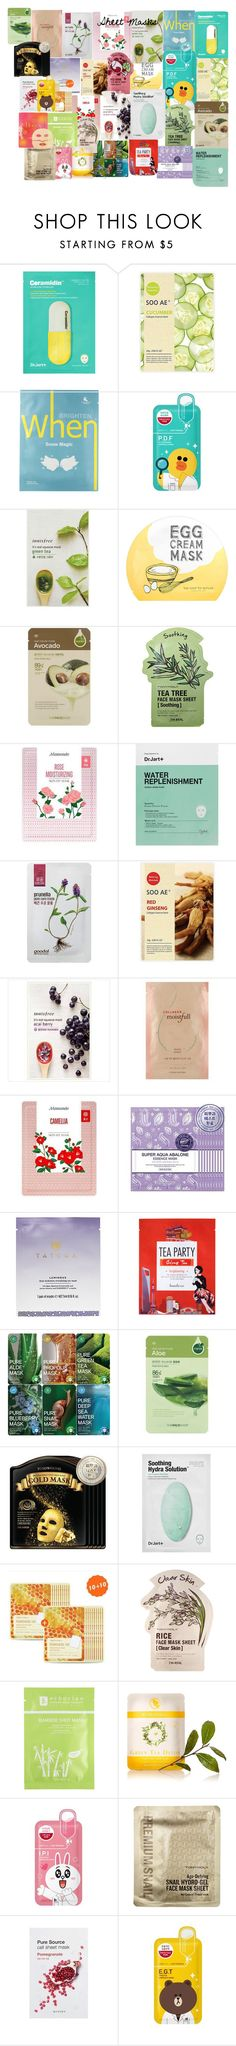 """""""Untitled #115"""" by emmierose1995 ❤ liked on Polyvore featuring beauty, Soo Ae, When, Innisfree, too cool for school, The Face Shop, Tony Moly, Mamonde, Goodal and Etude House"""